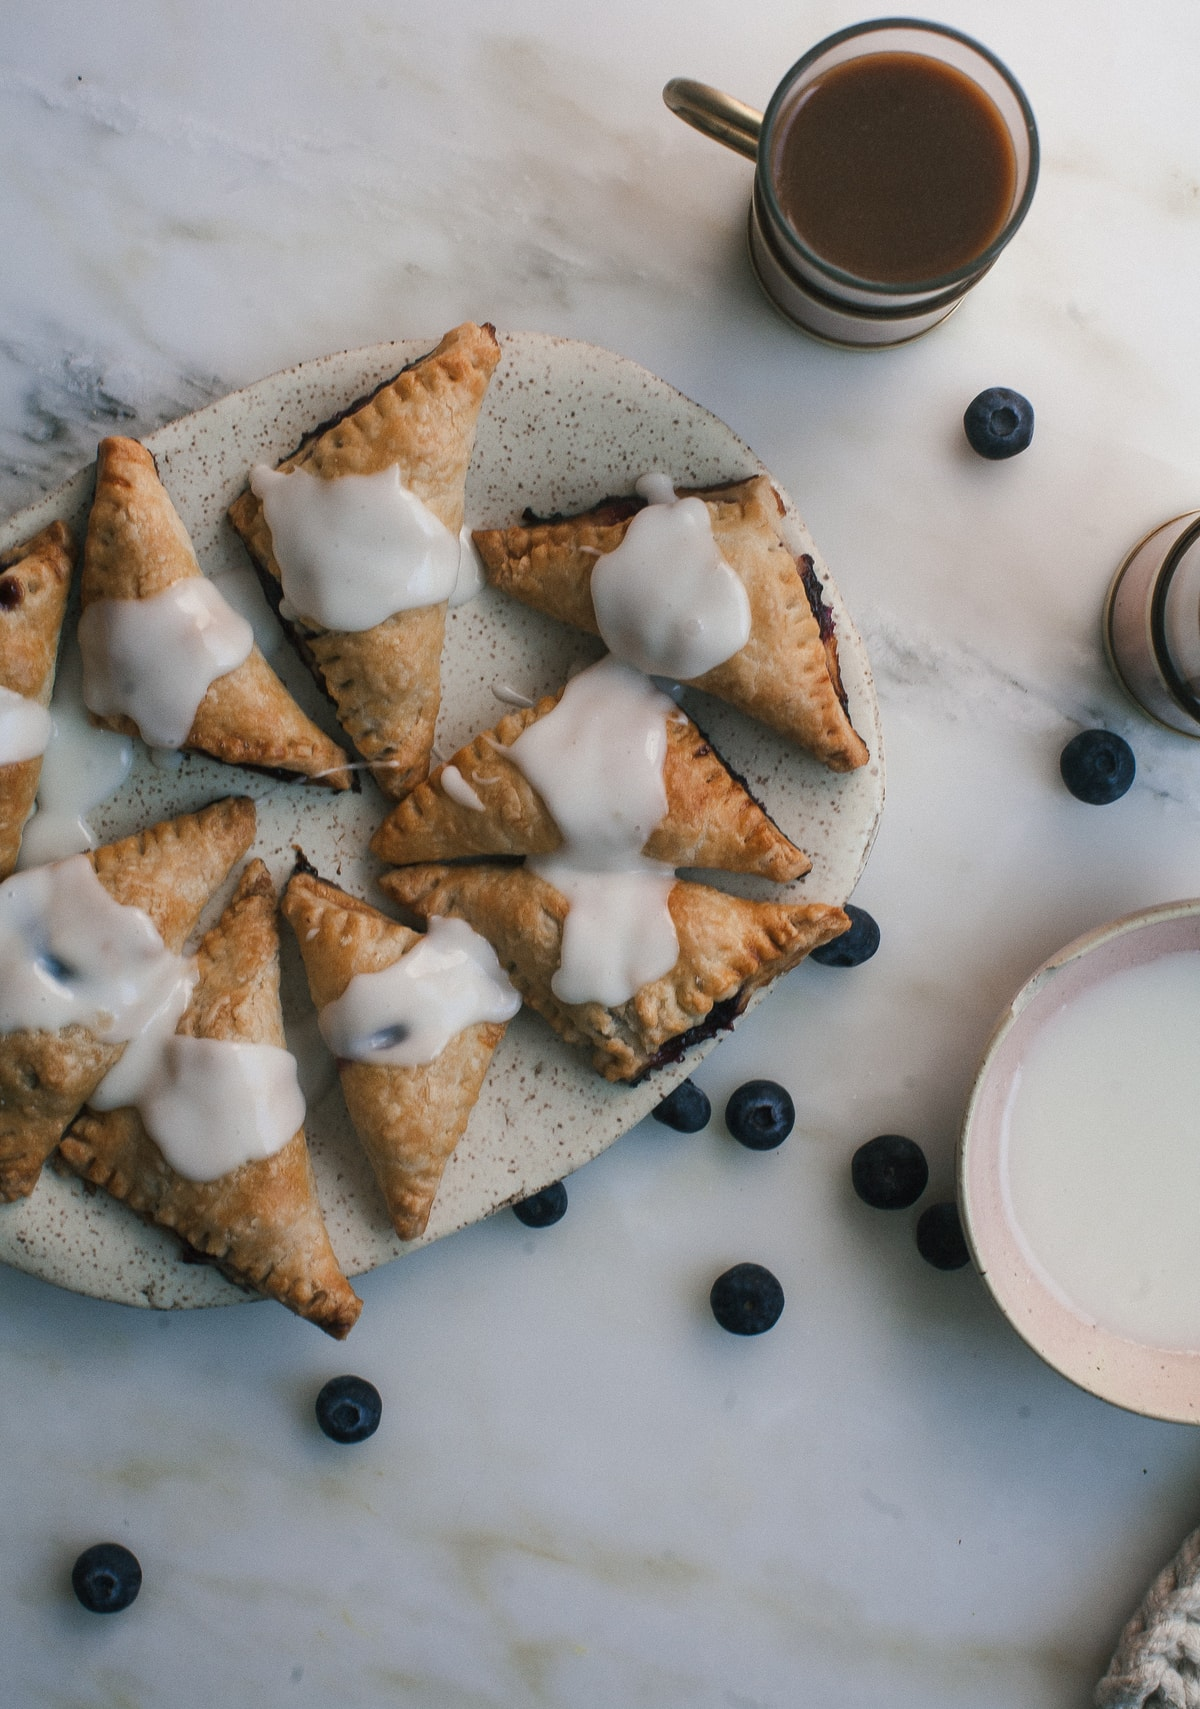 Blueberry-Blackberry Turnovers